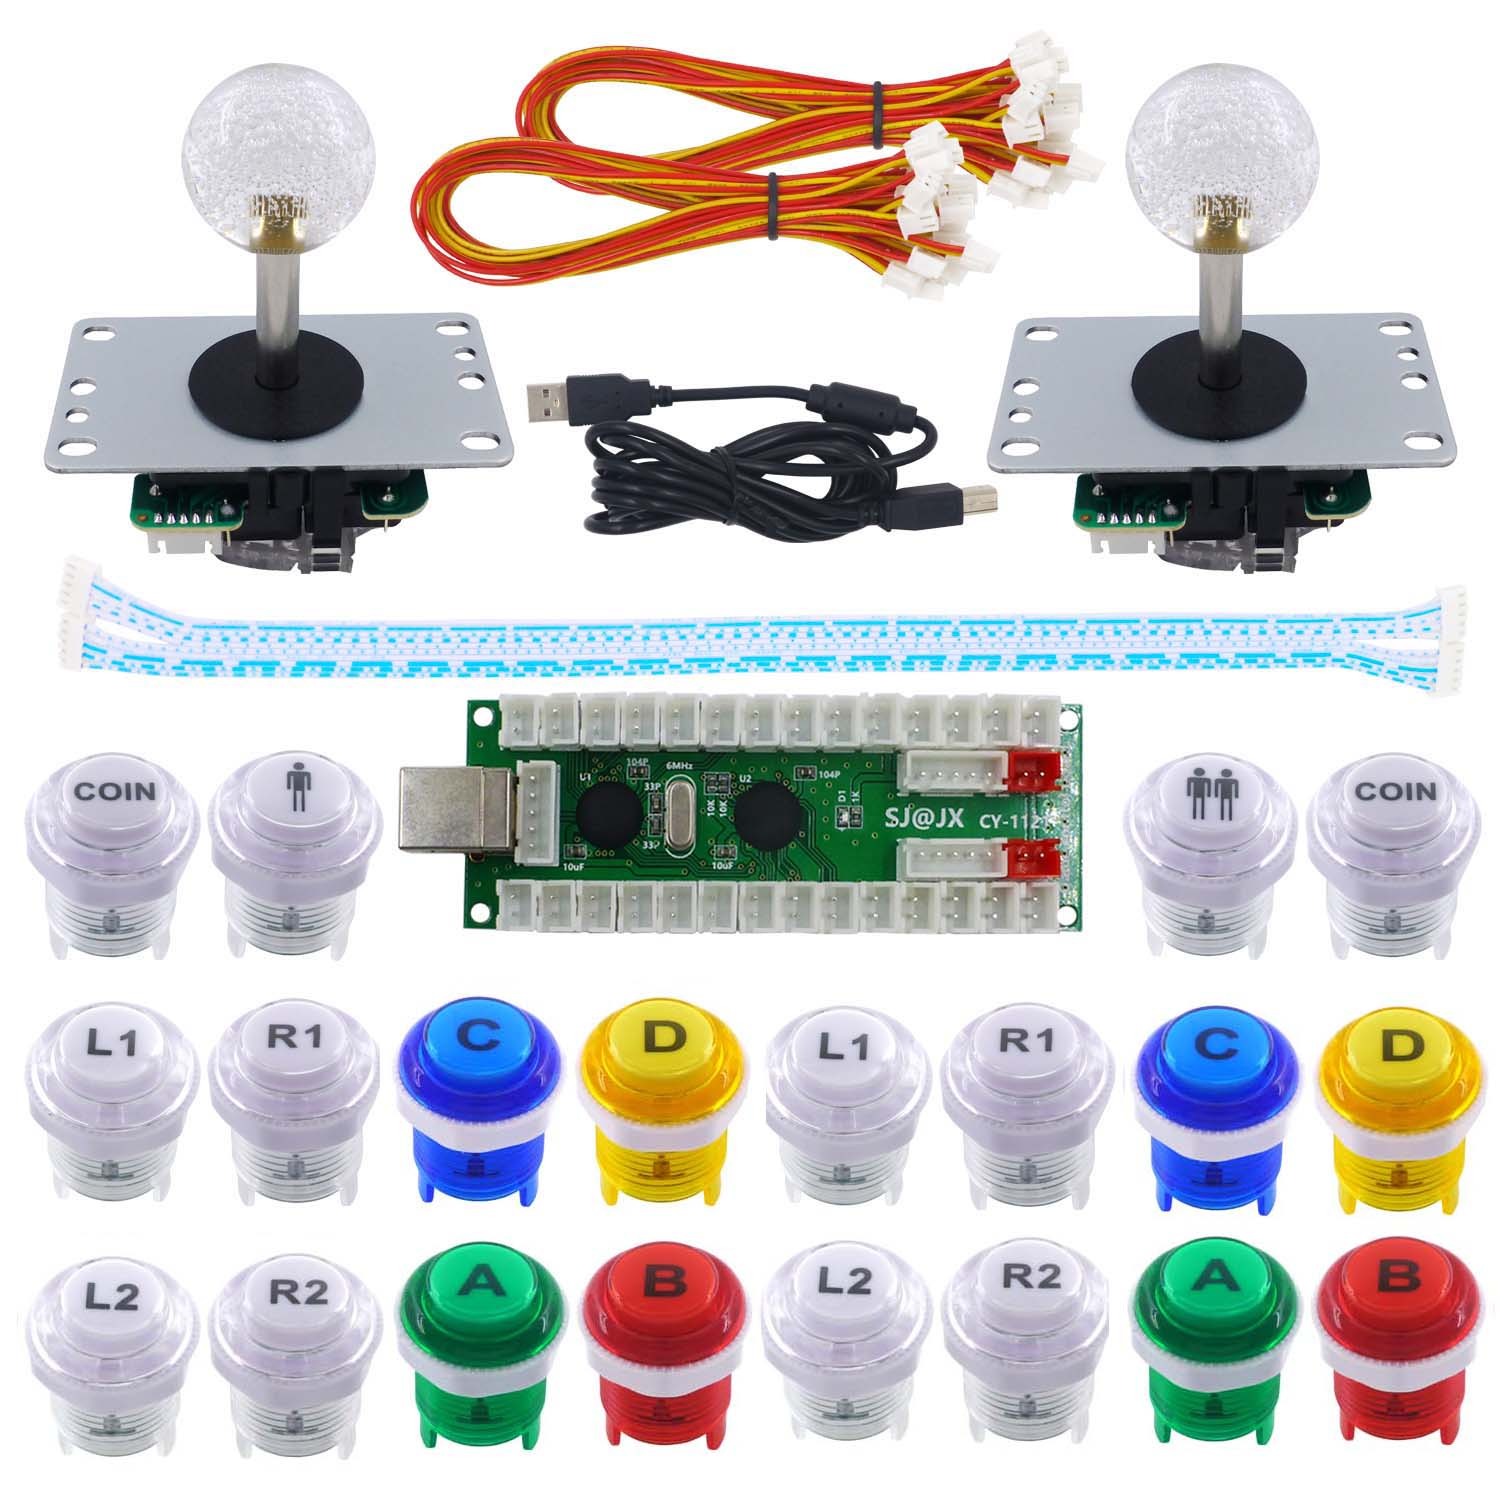 SJ@JX 2 Player Arcade Game DIY Kit Arcade Joystick Controller Mechanical Keyboard Switch Retropie Raspberry   MAME Arcade Button